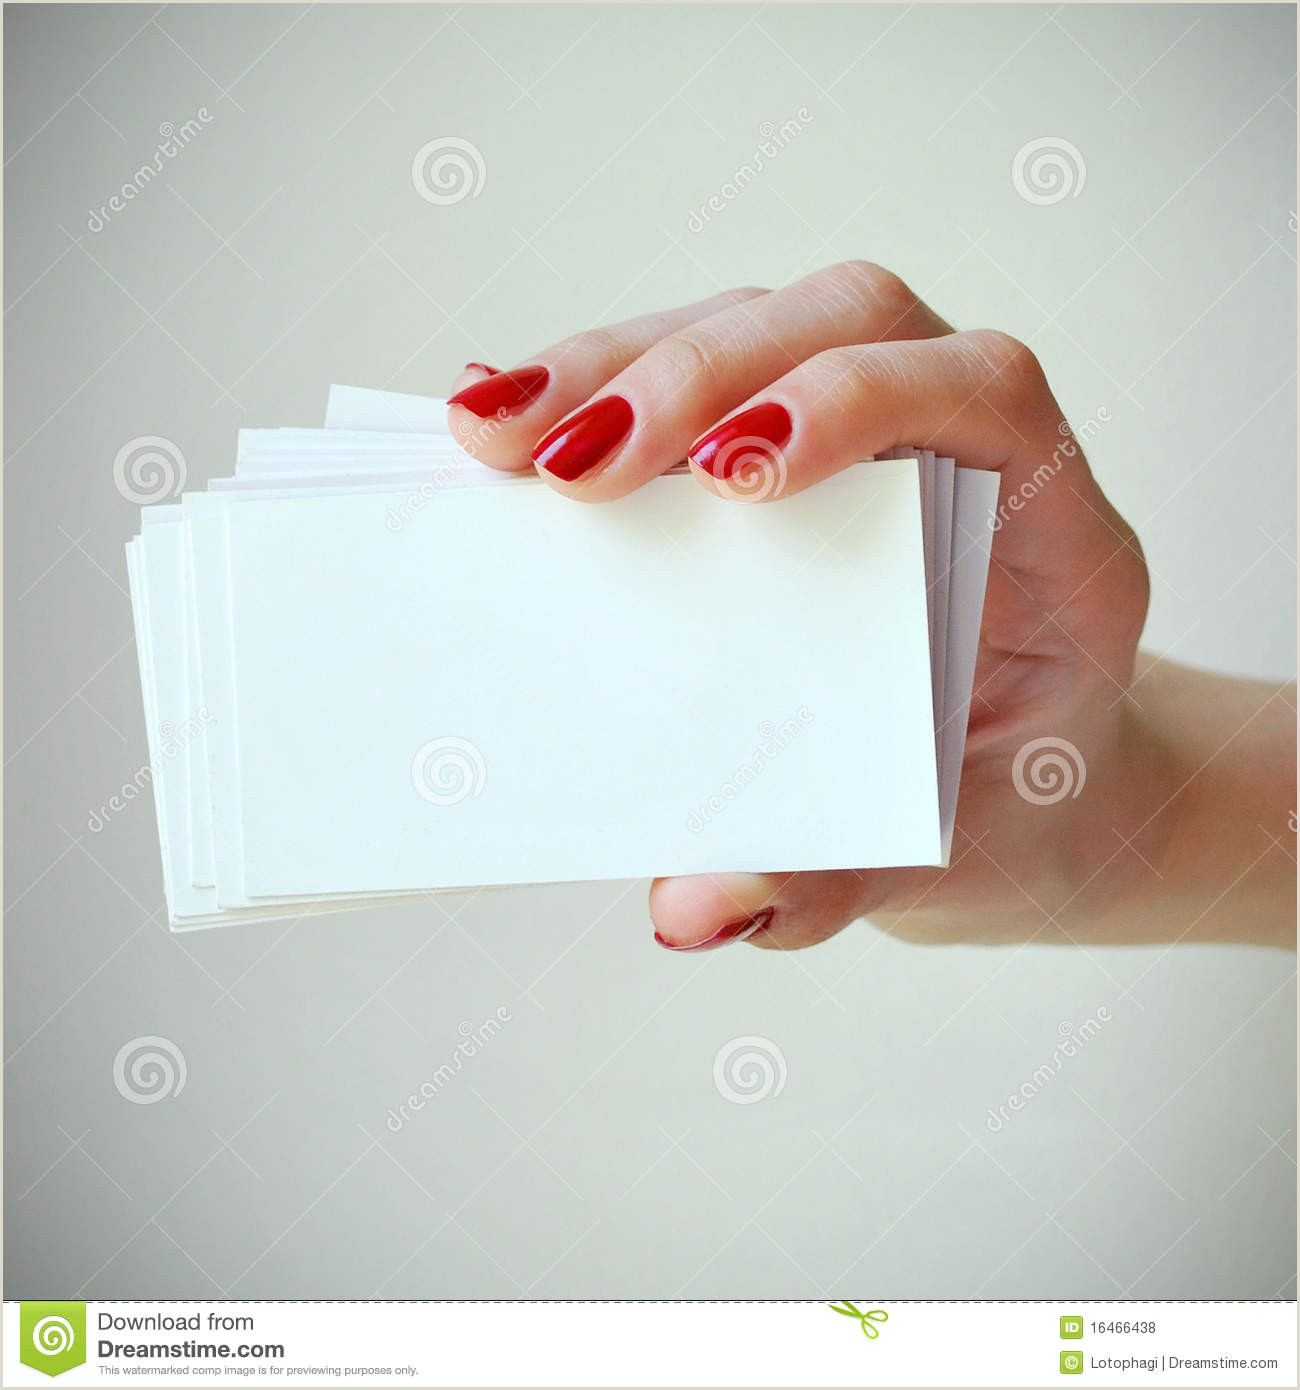 Images Of Business Cards 41 901 Business Cards S Free & Royalty Free Stock